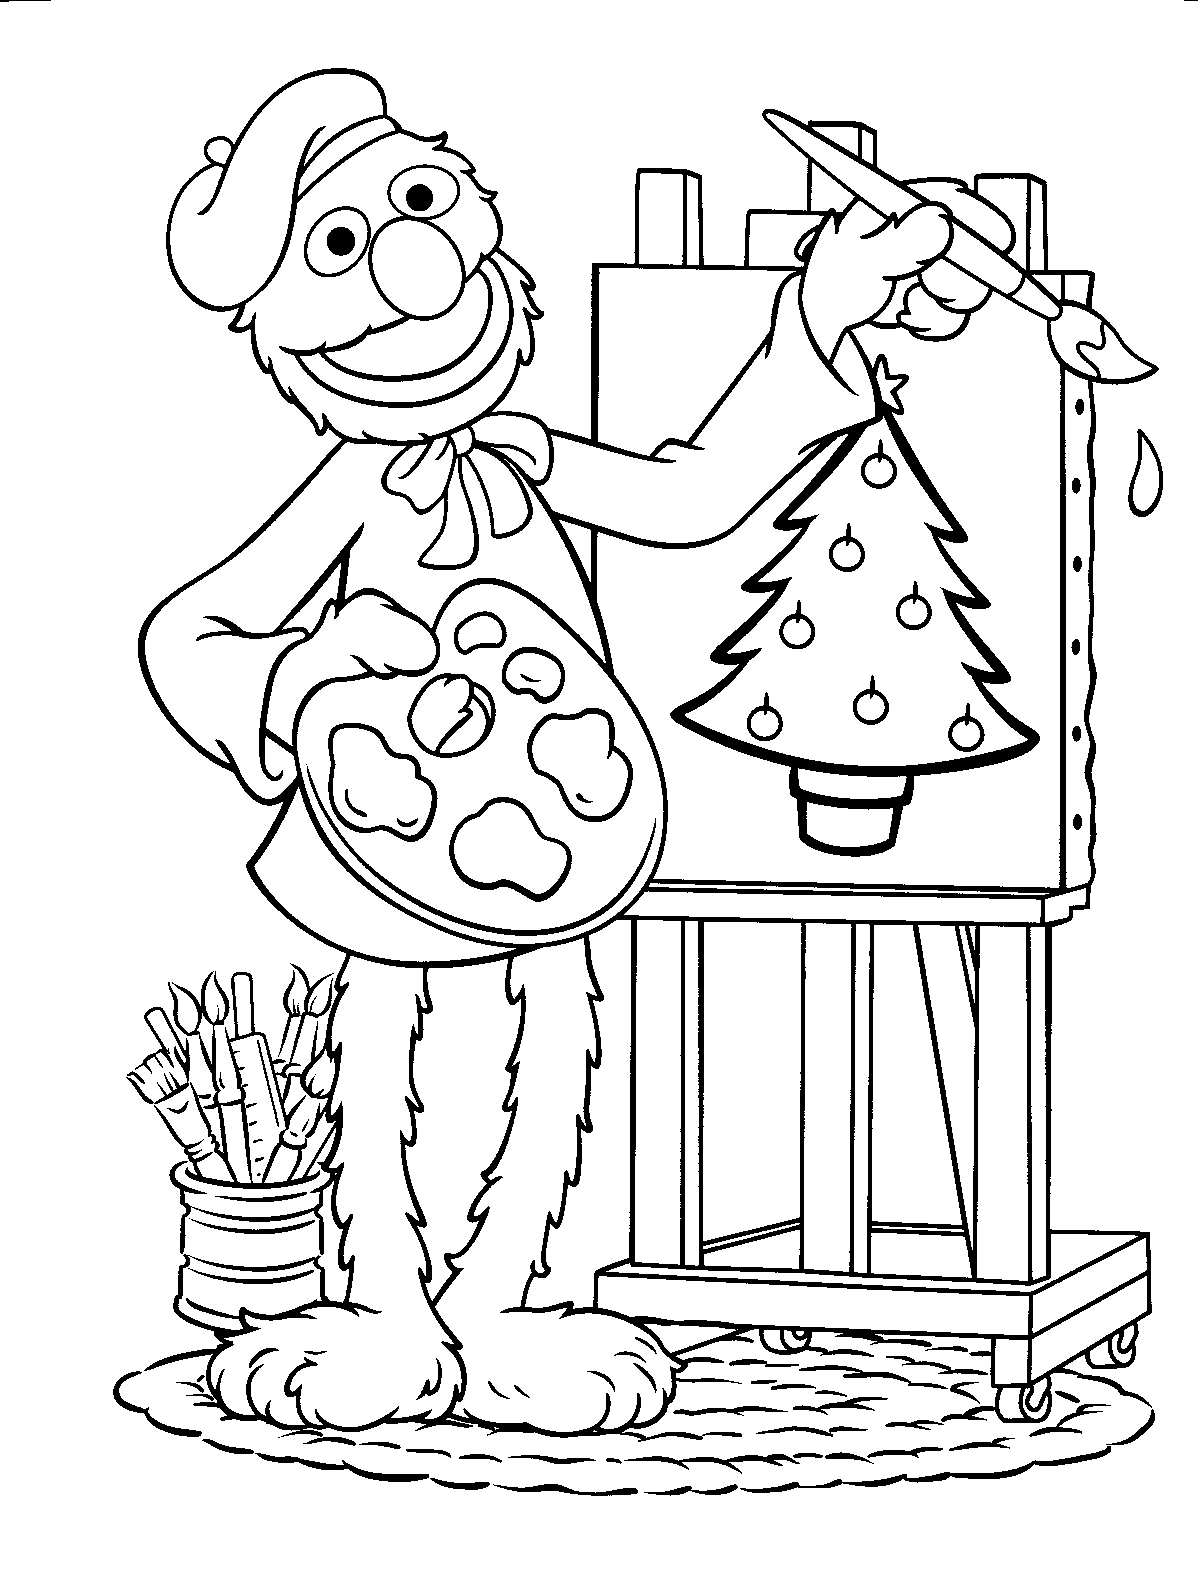 Elmo Christmas Coloring Pages With Image Of Sesame Street